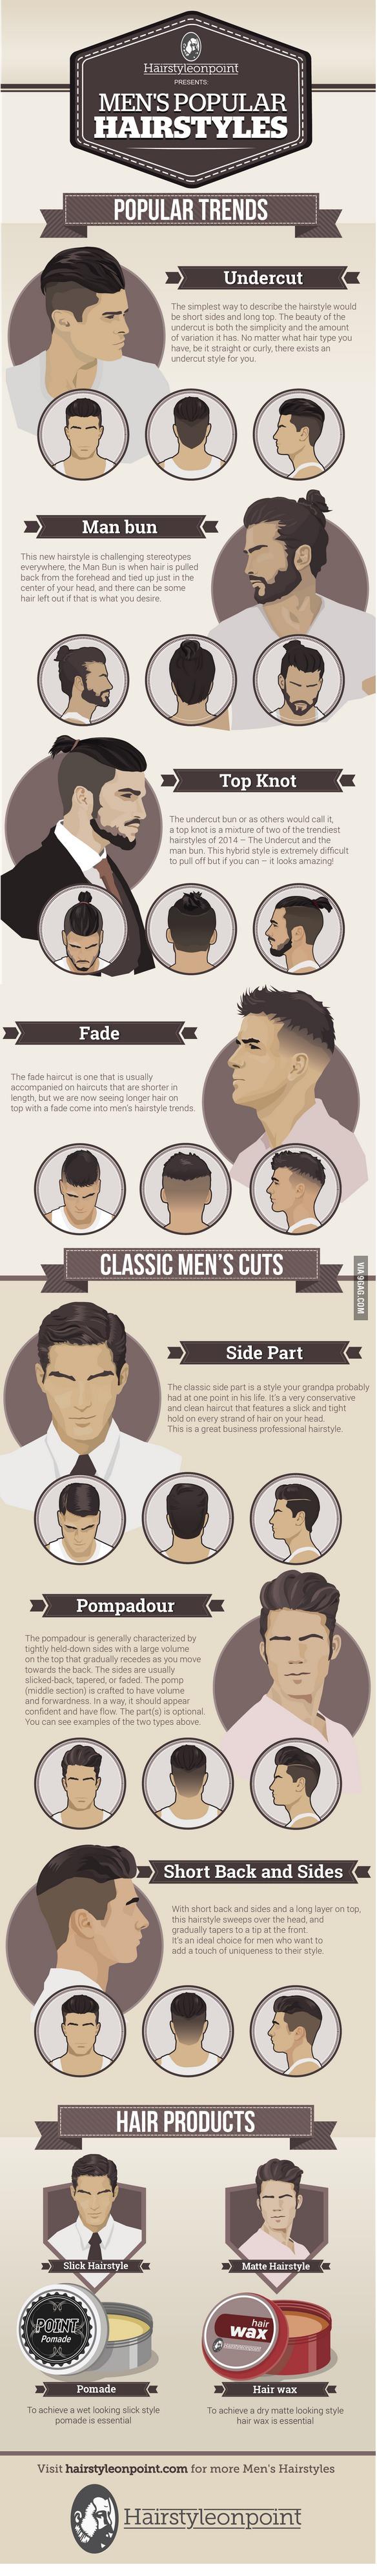 How About a New Look Hair style Haircuts and Hair cuts